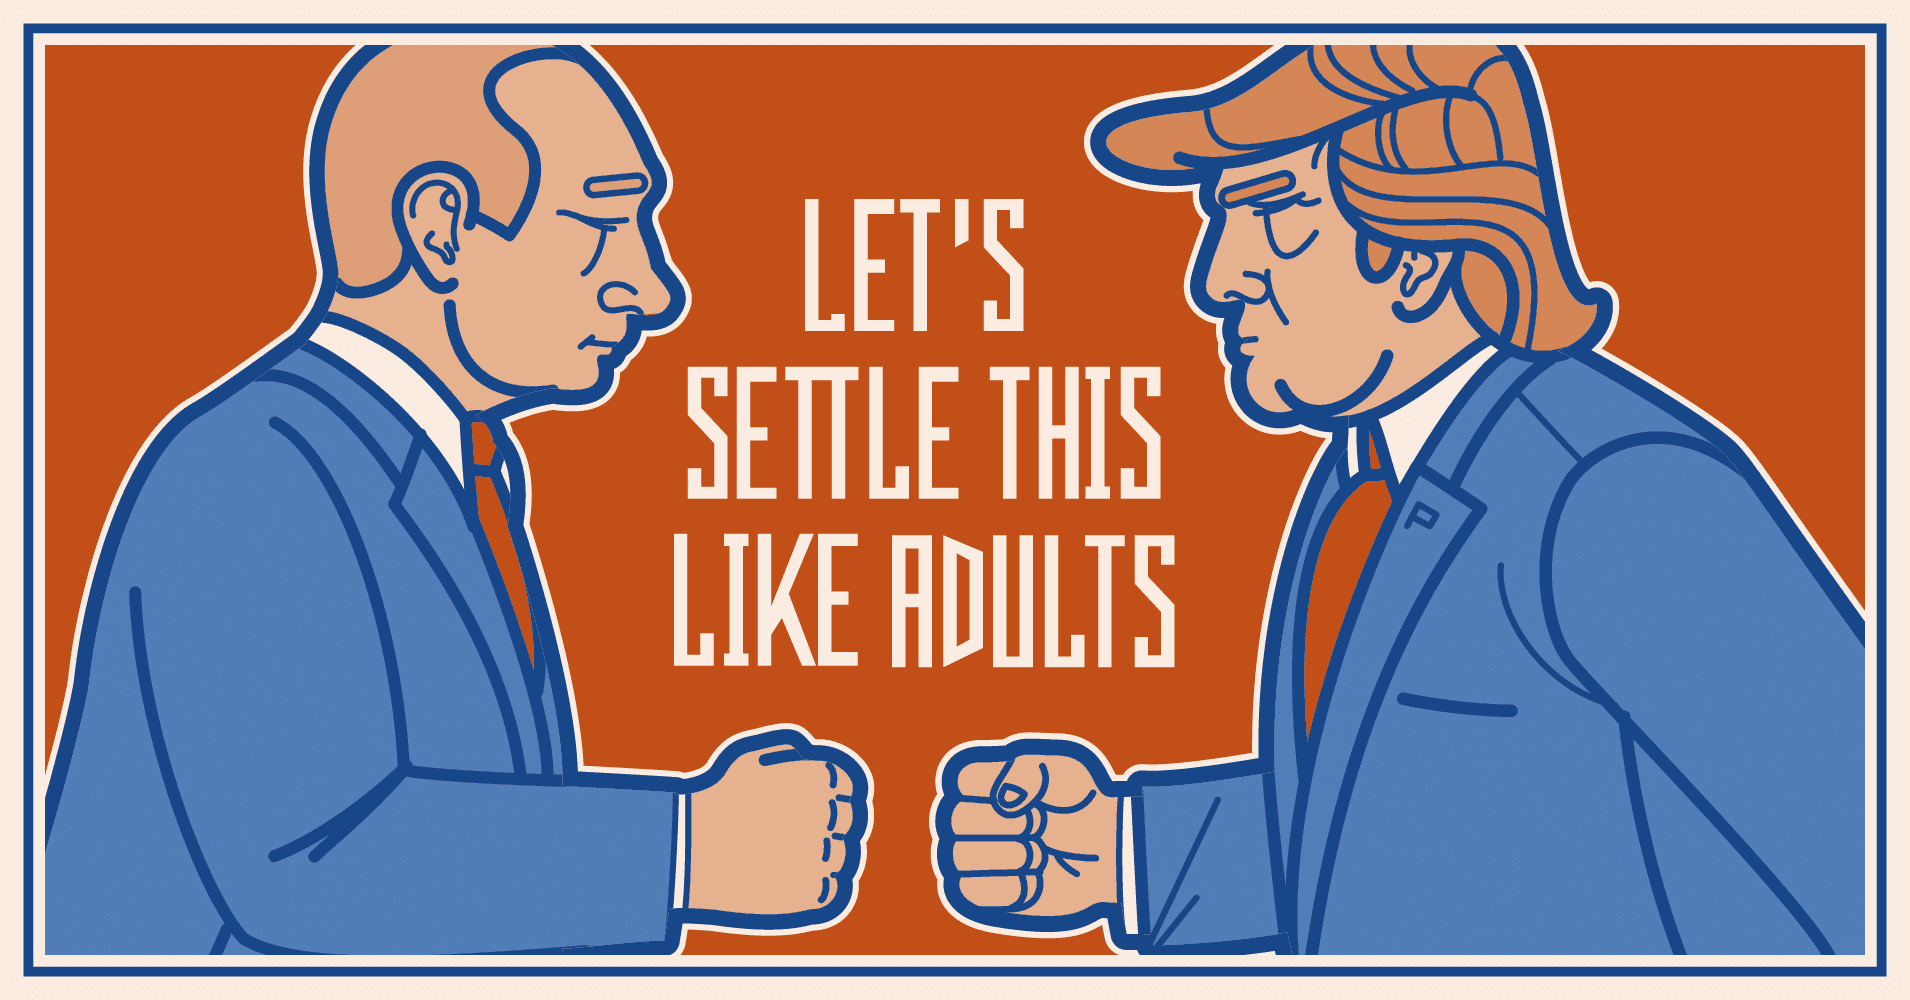 Helsinki-summit-lets-settle-this-like-adults-1